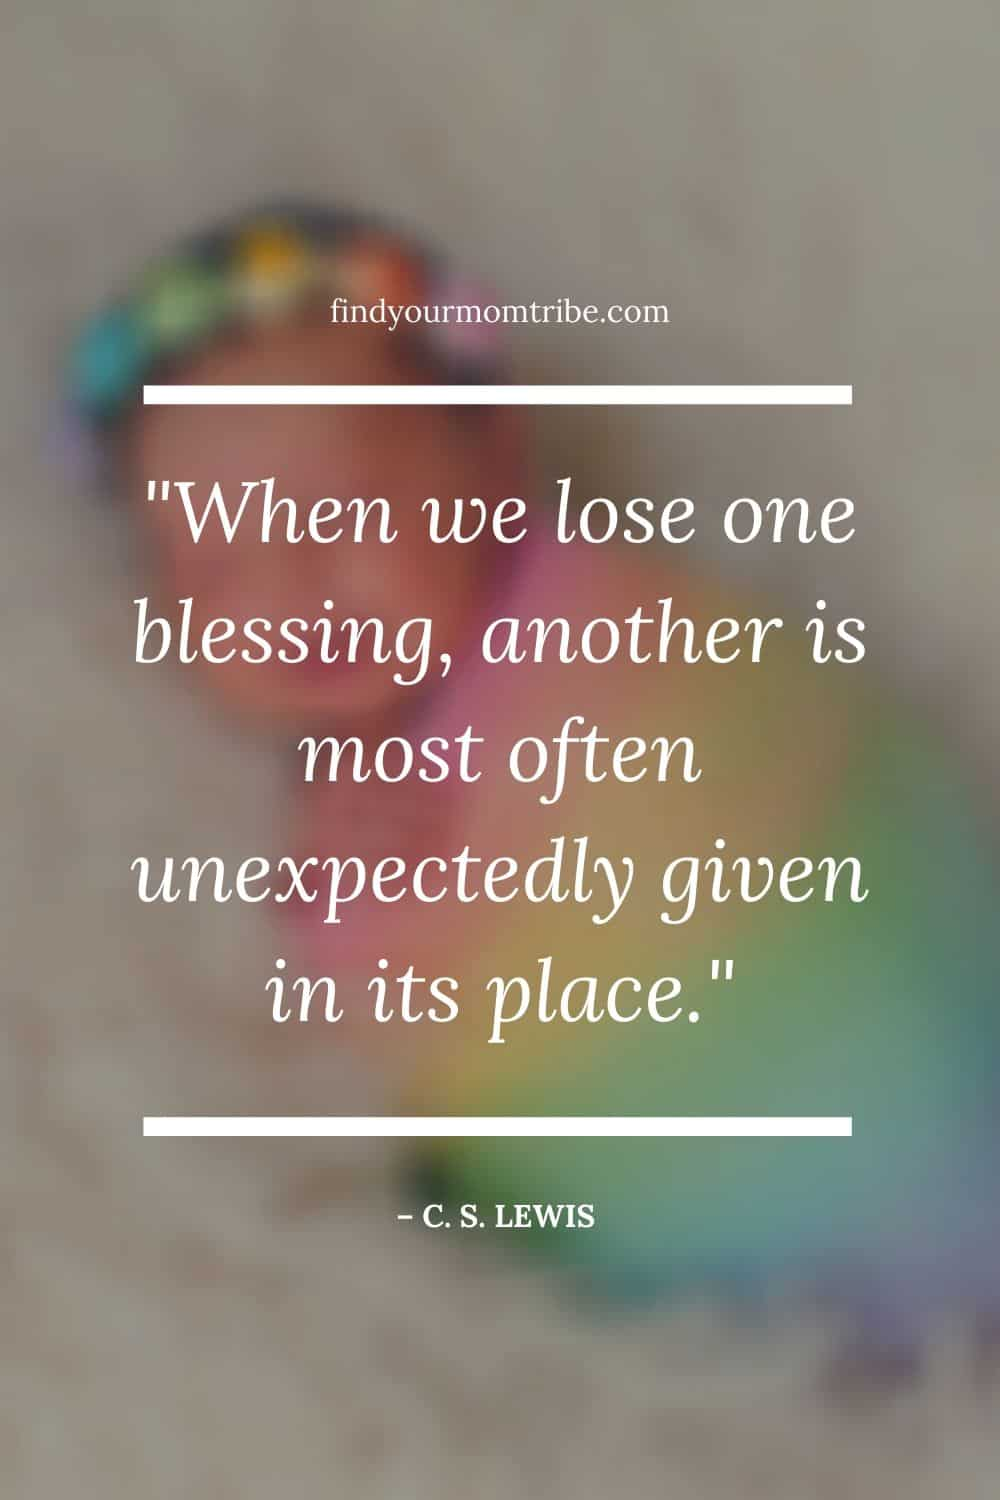 Rainbow Baby Quotes: 23 Ways To Express Newfound Hope